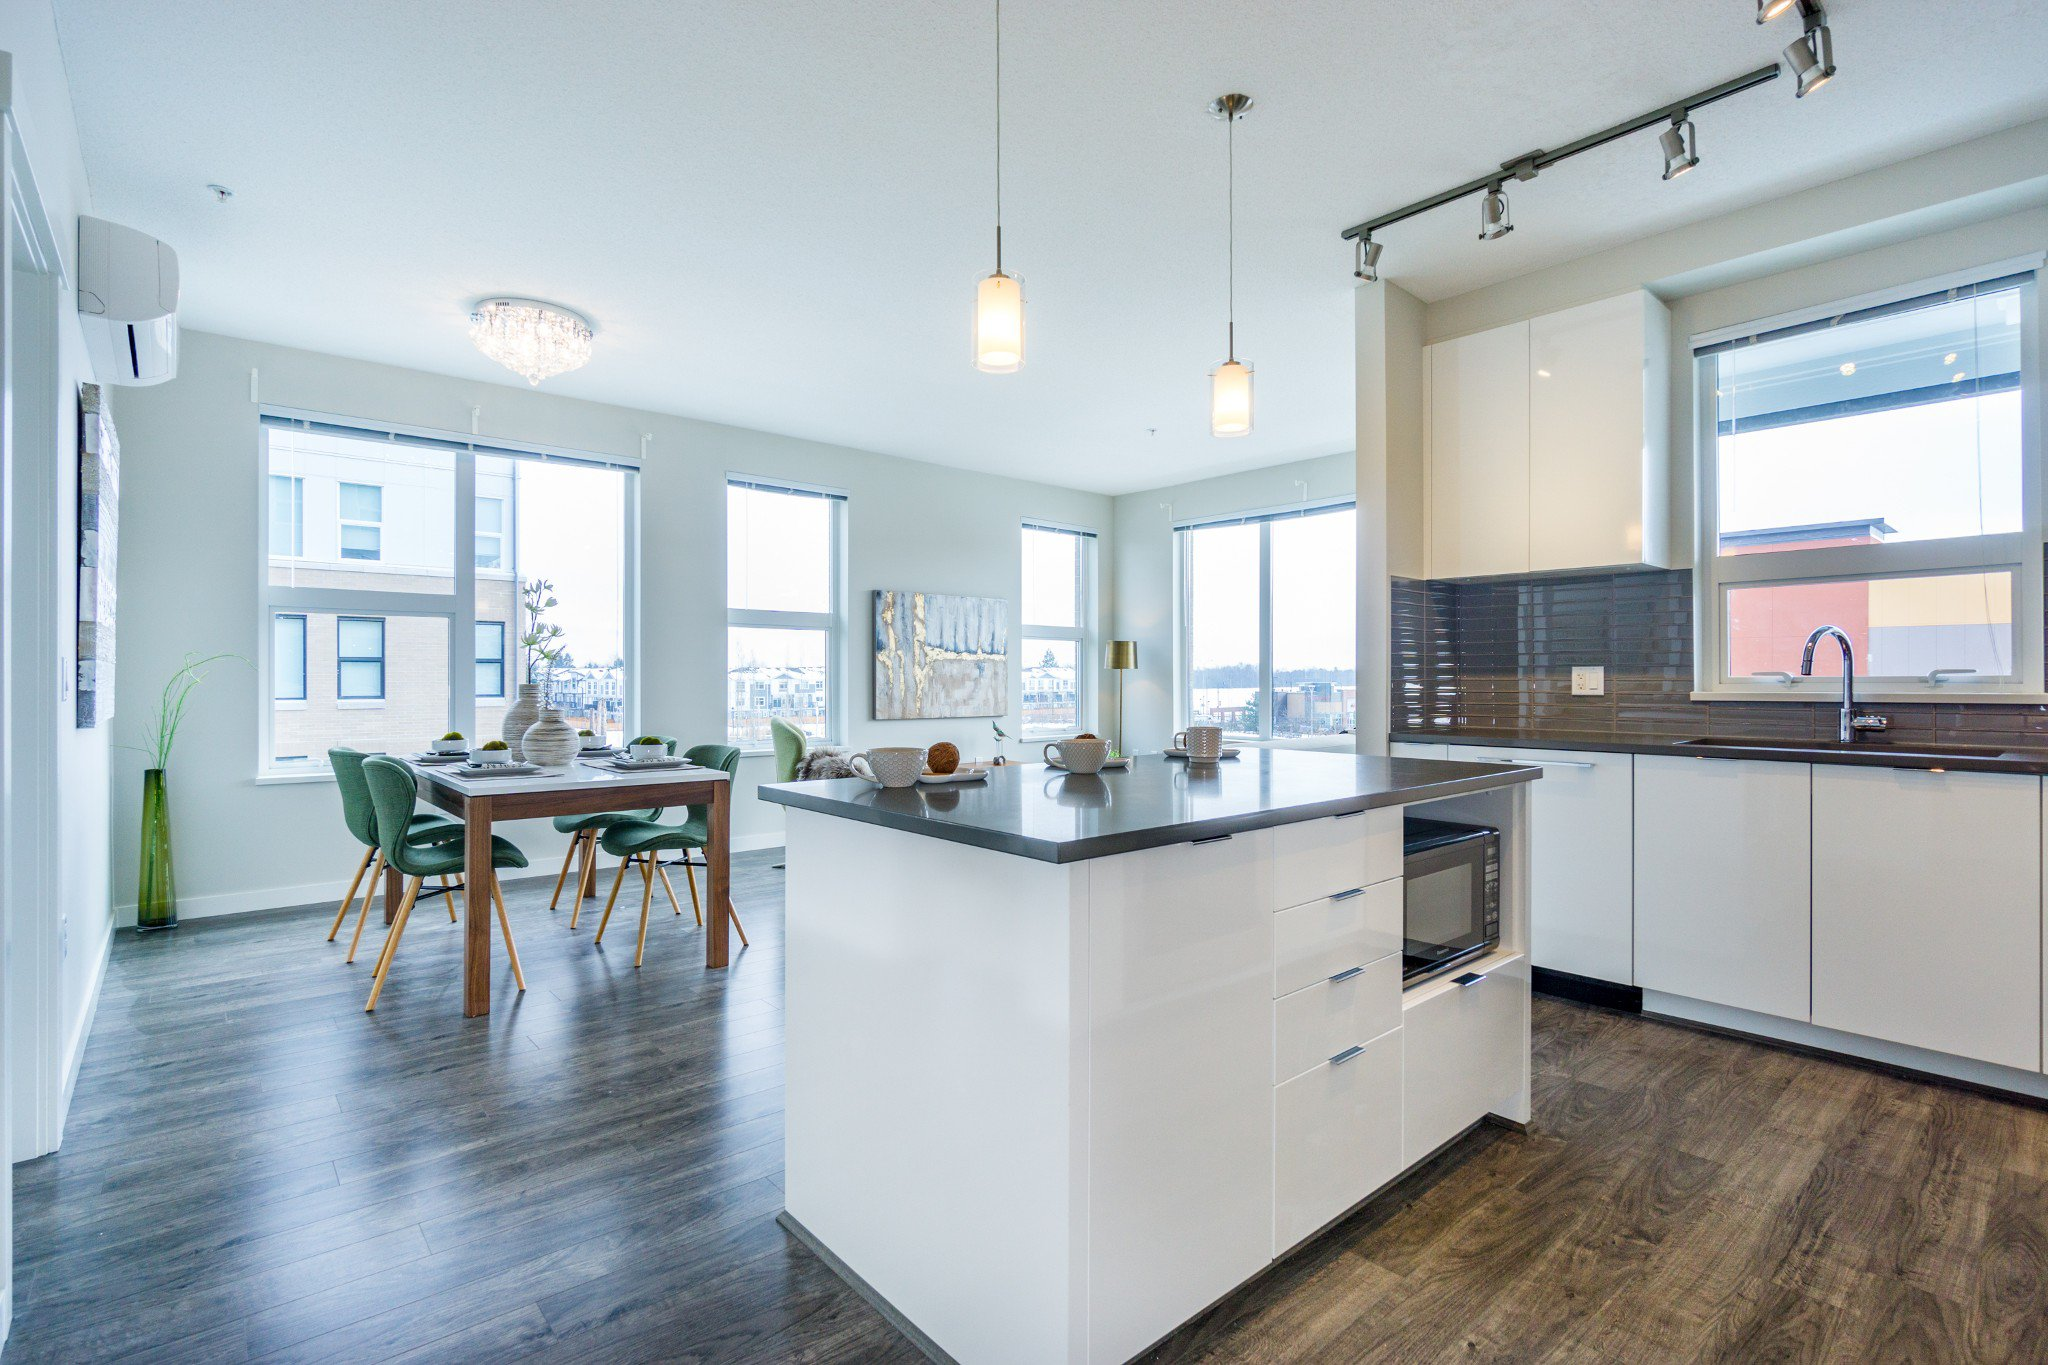 """Photo 3: Photos: 303 9311 ALEXANDRA Road in Richmond: West Cambie Condo for sale in """"ALEXANDRA COURT"""" : MLS®# R2347629"""